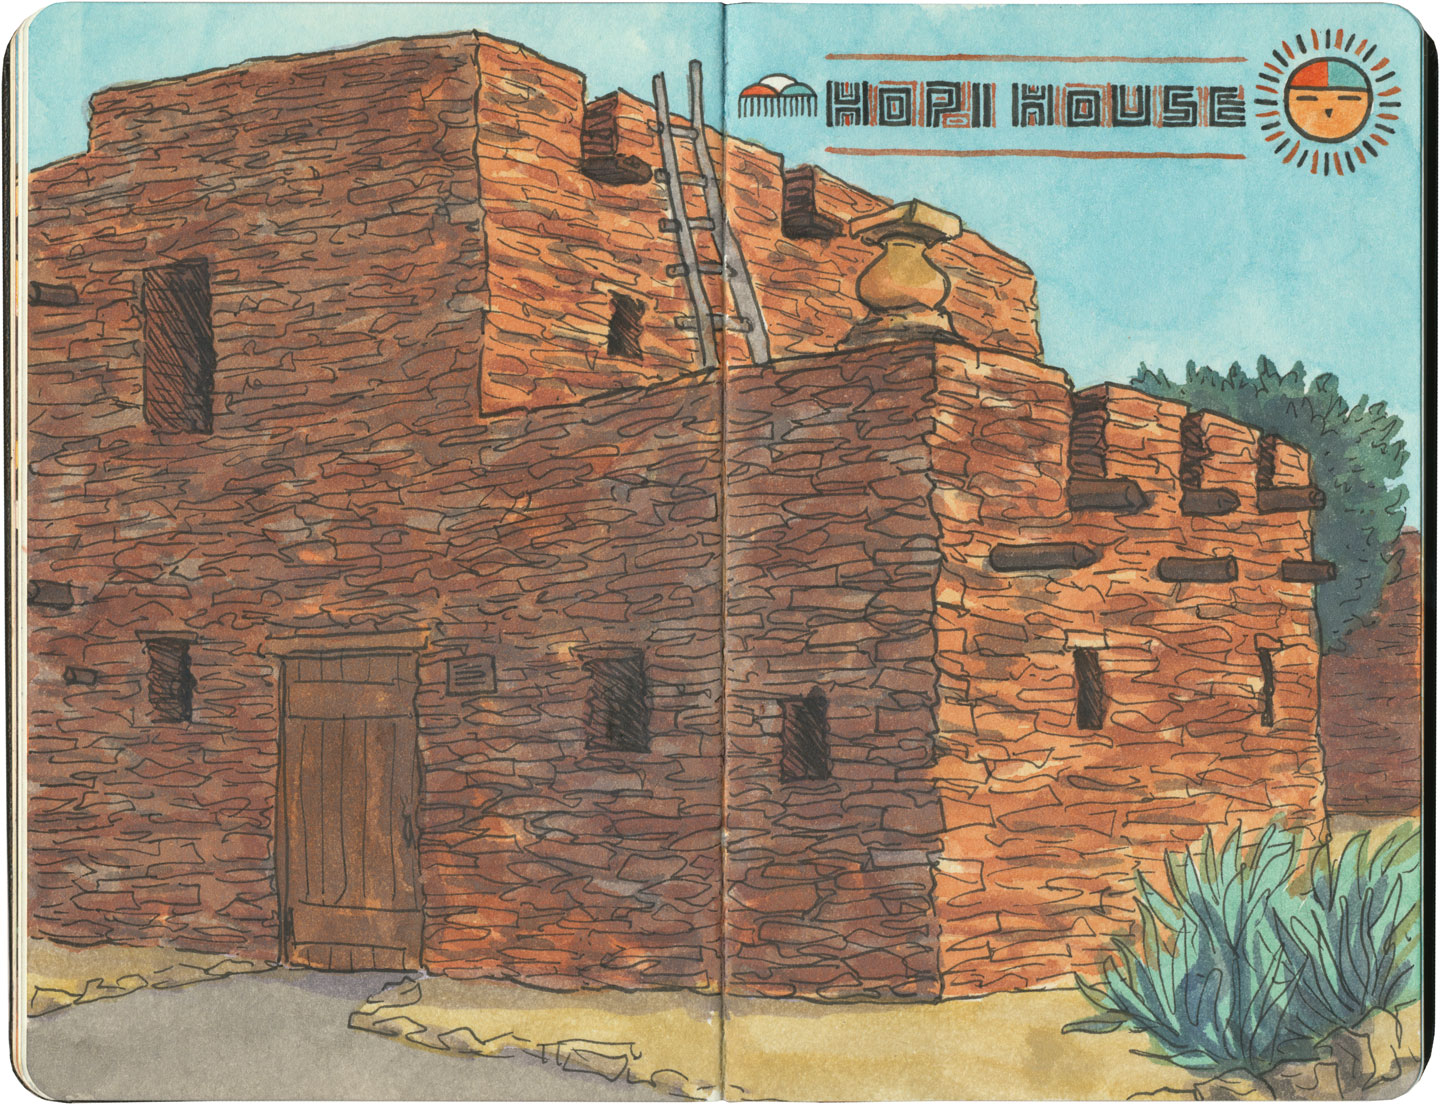 Grand Canyon sketch by Chandler O'Leary featuring Hopi House, a former Harvey House